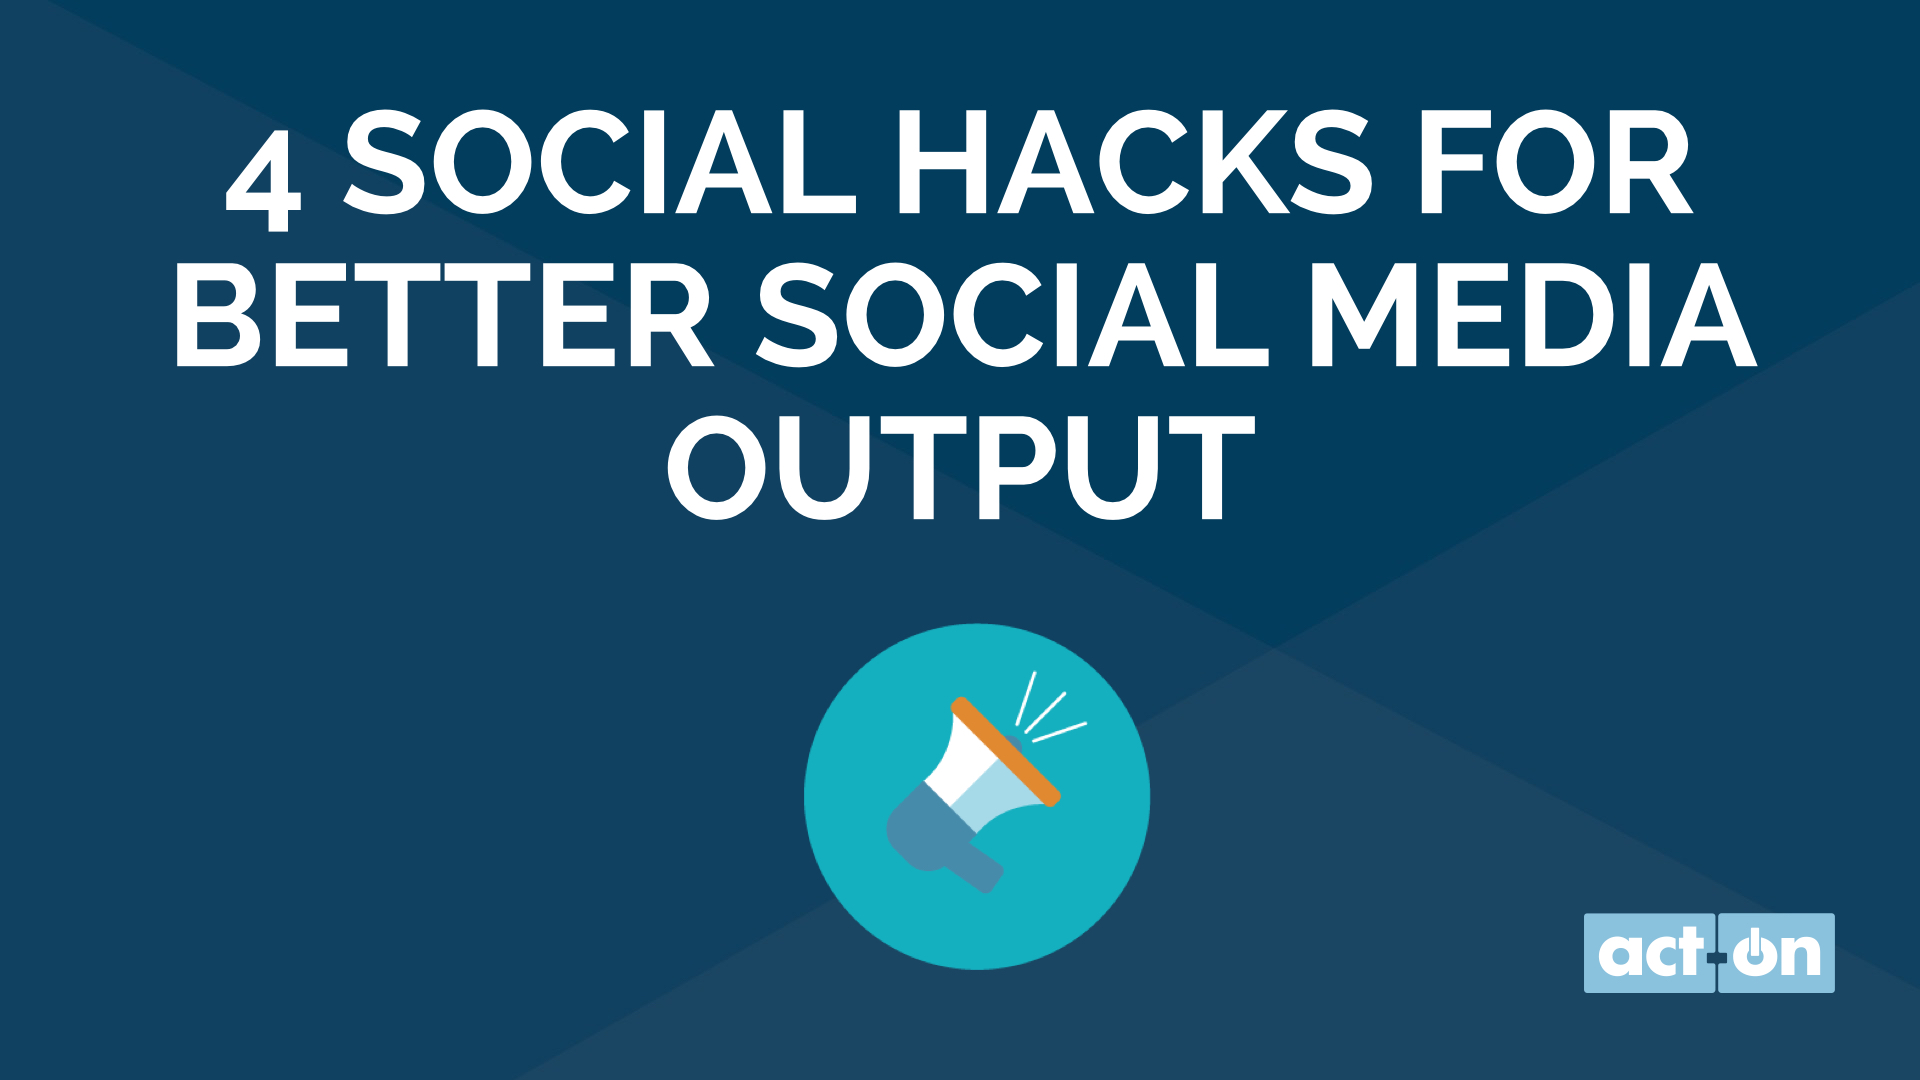 4 Social Hacks for Better Social Media Output